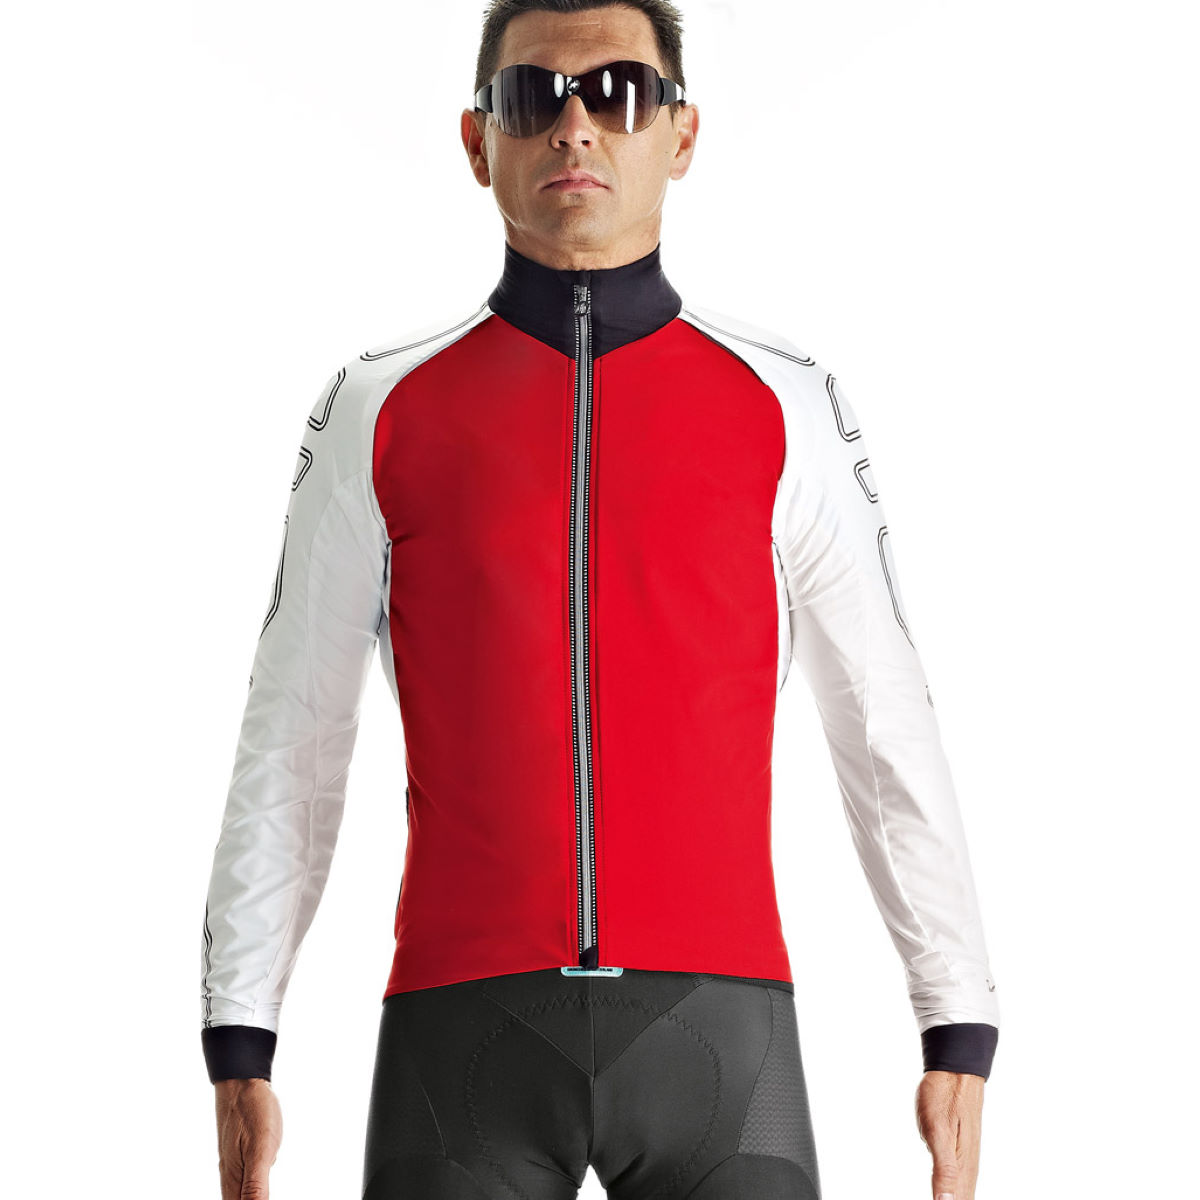 Veste coupe-vent Assos iJ.shaqUno - TIR Red Swiss Coupe-vents vélo